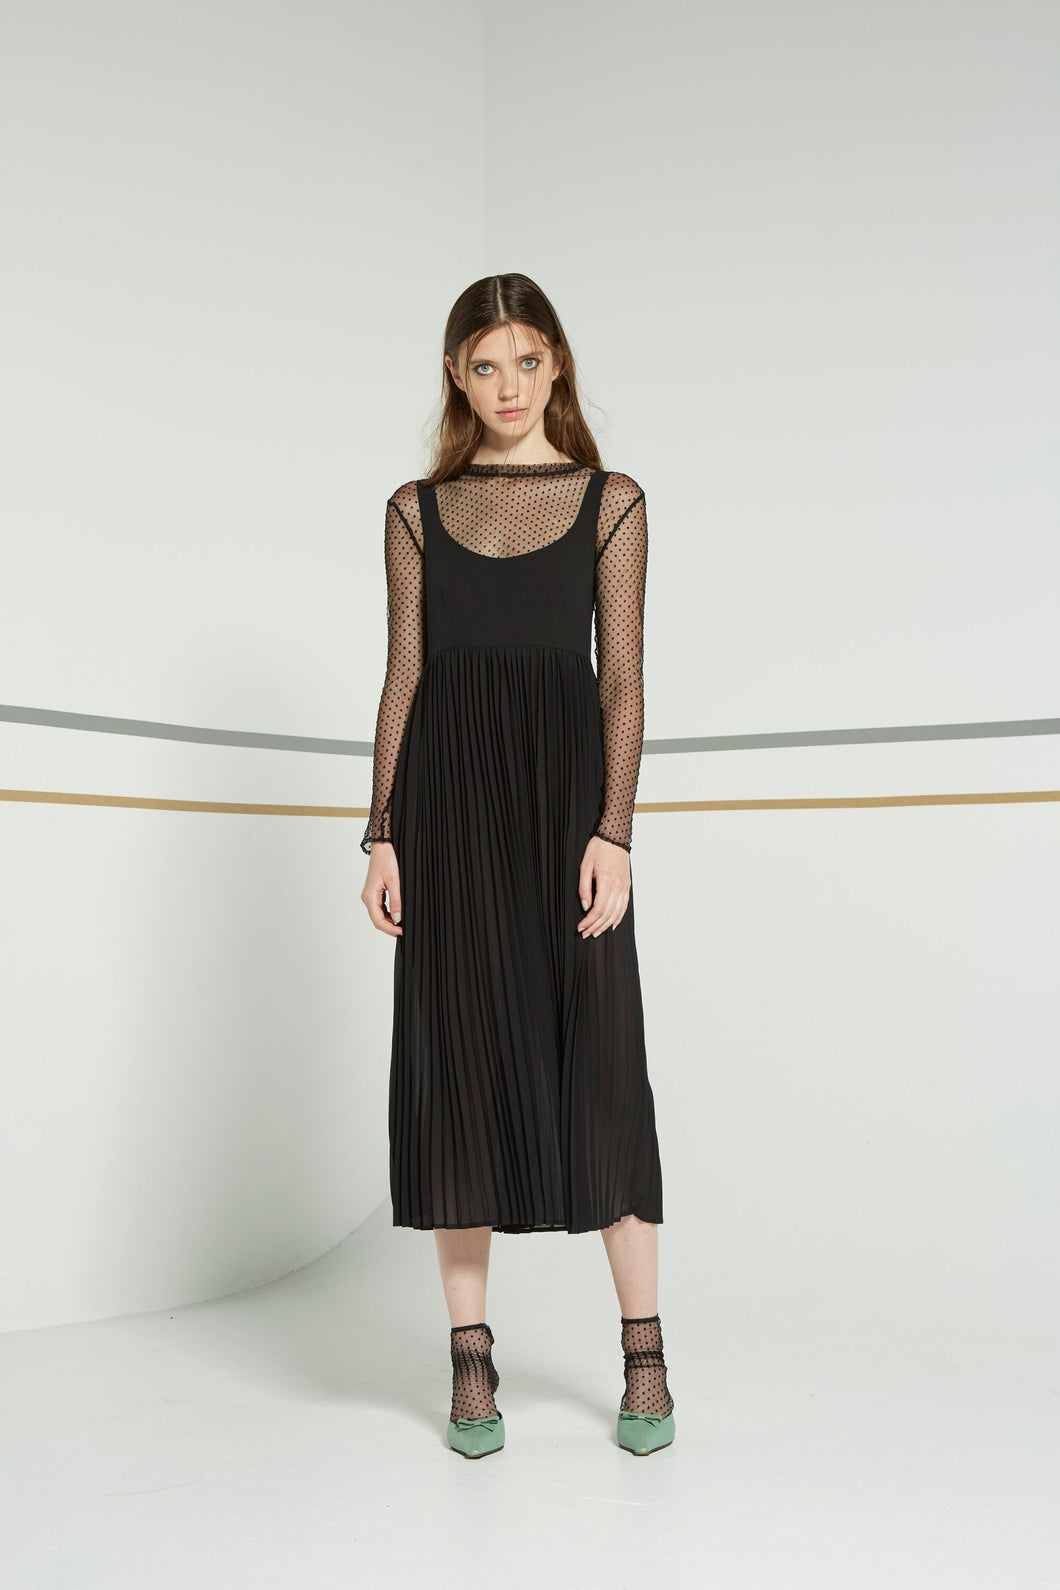 Nikola dress, black